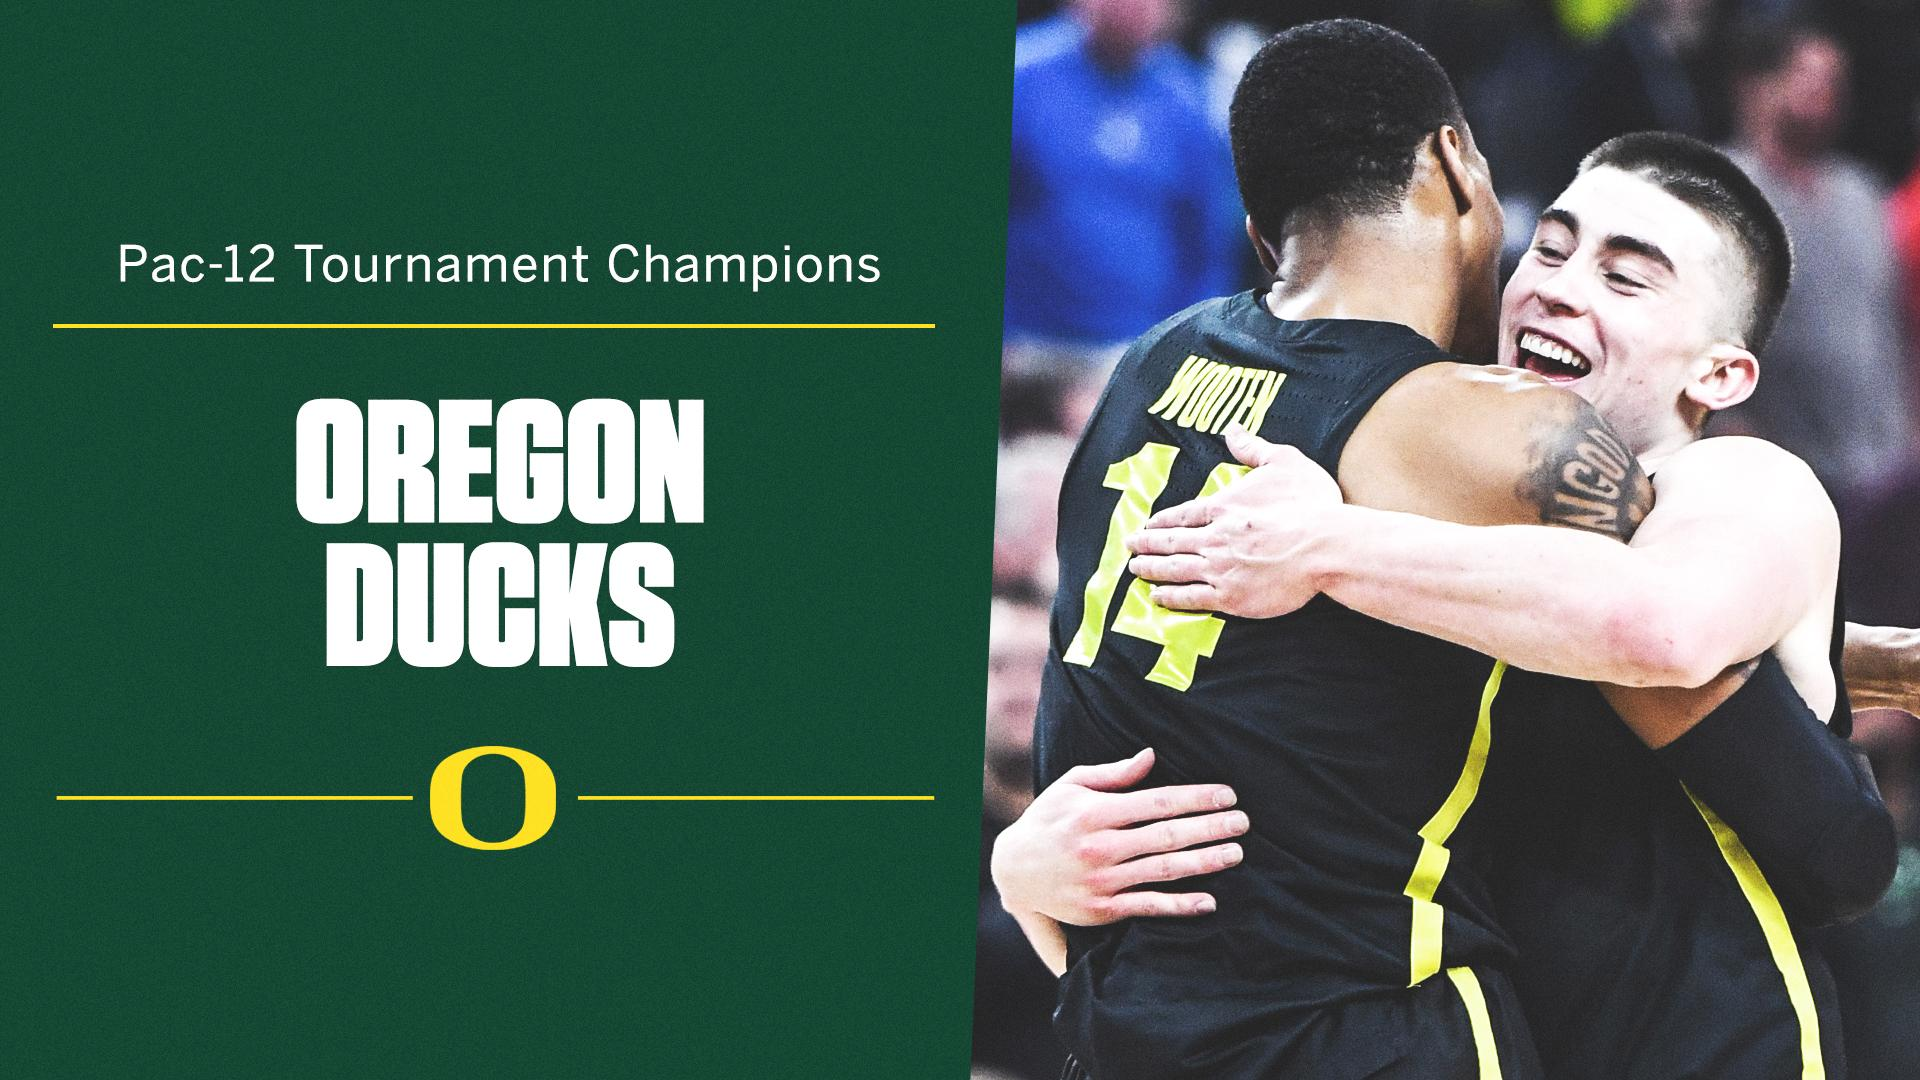 The Ducks are back in the dance!  6-seed Oregon defeats top-seeded Washington to win the Pac-12 Tournament. https://t.co/N2ogKtET2h